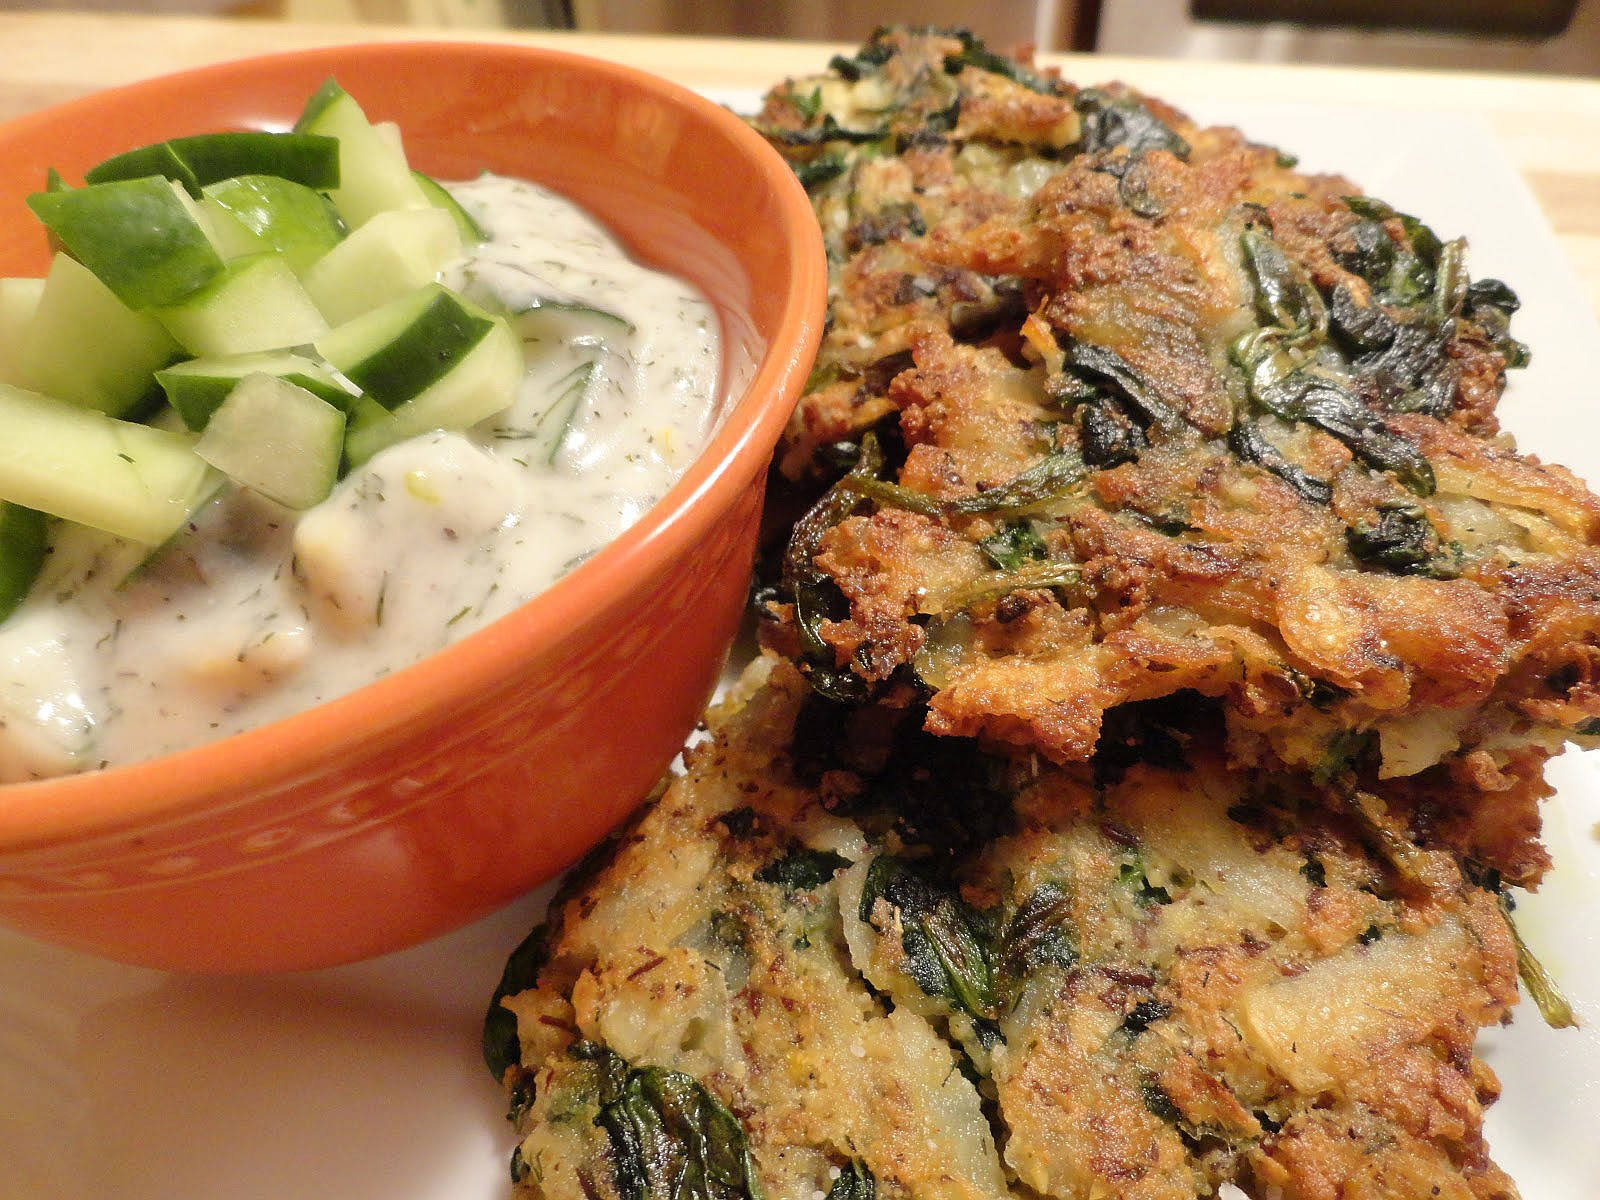 Greek Spinach, Potato and Feta Latkes with Tzatziki Sauce